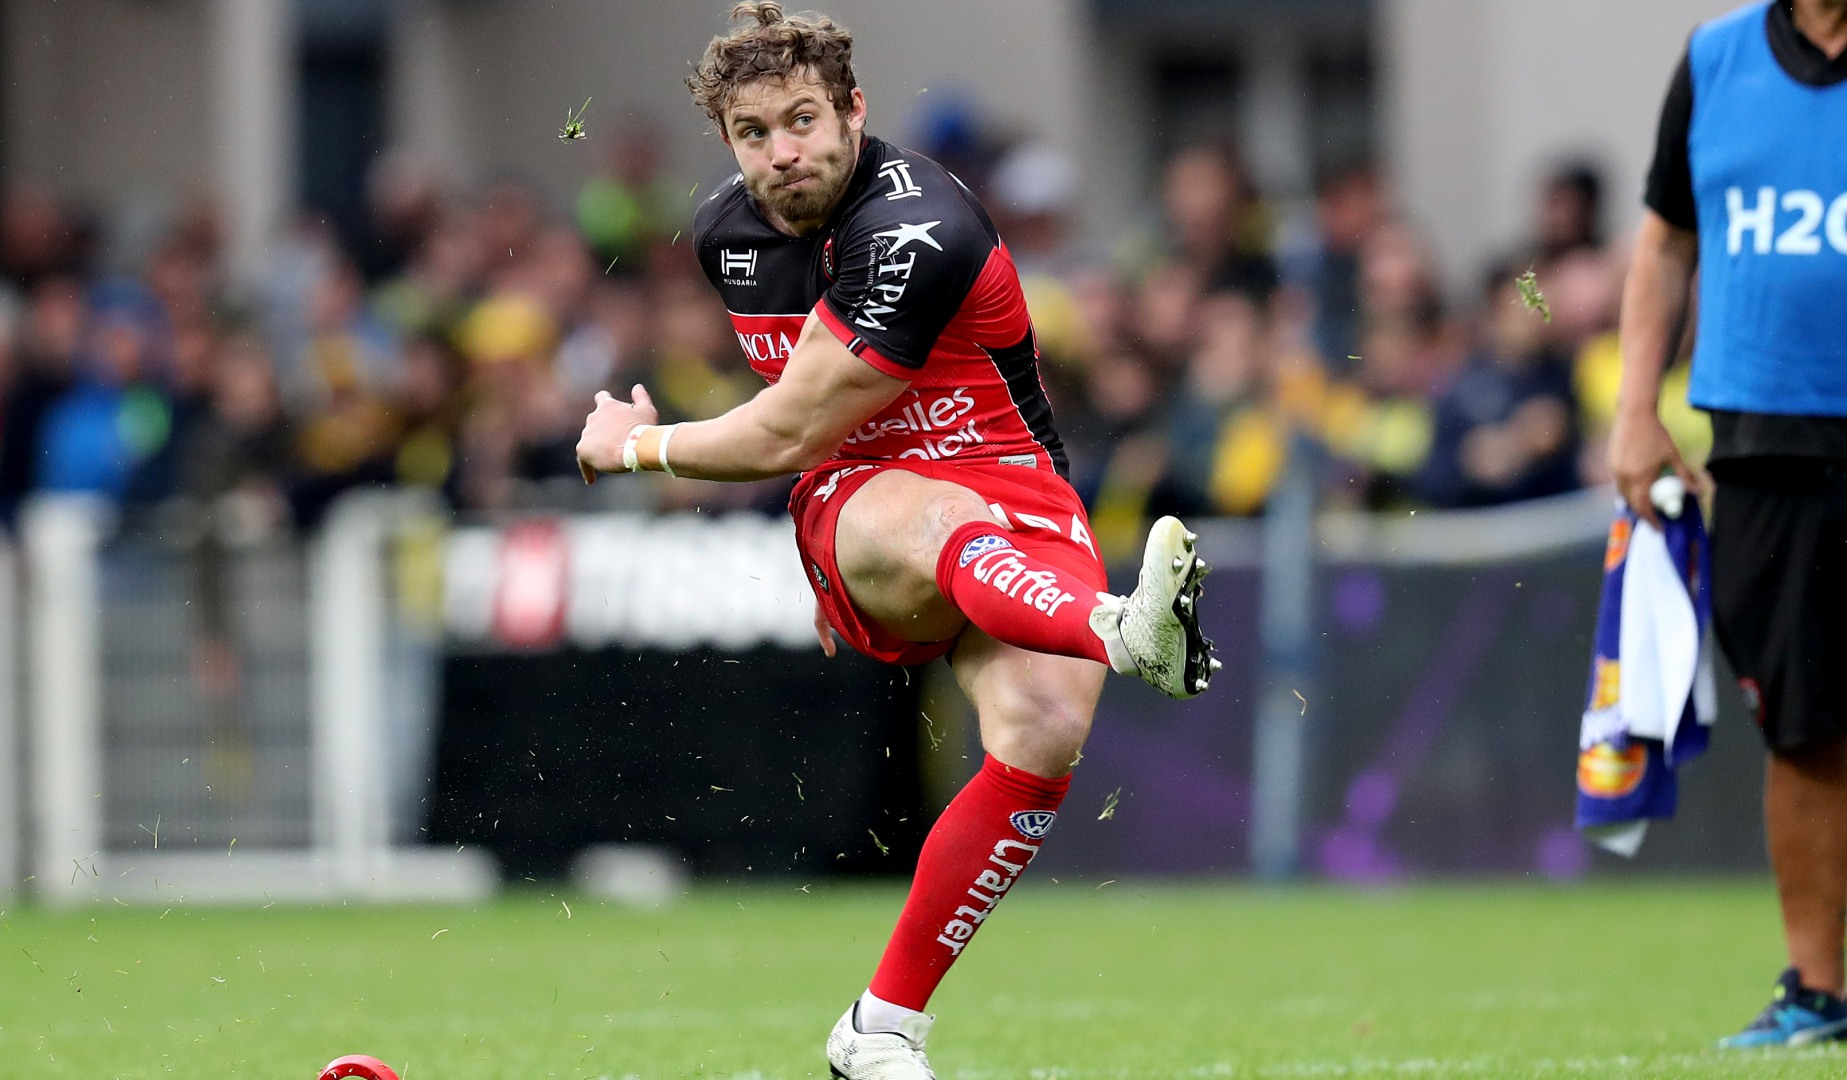 Halfpenny scores 21 points as Toulon progress to Top 14 semi final